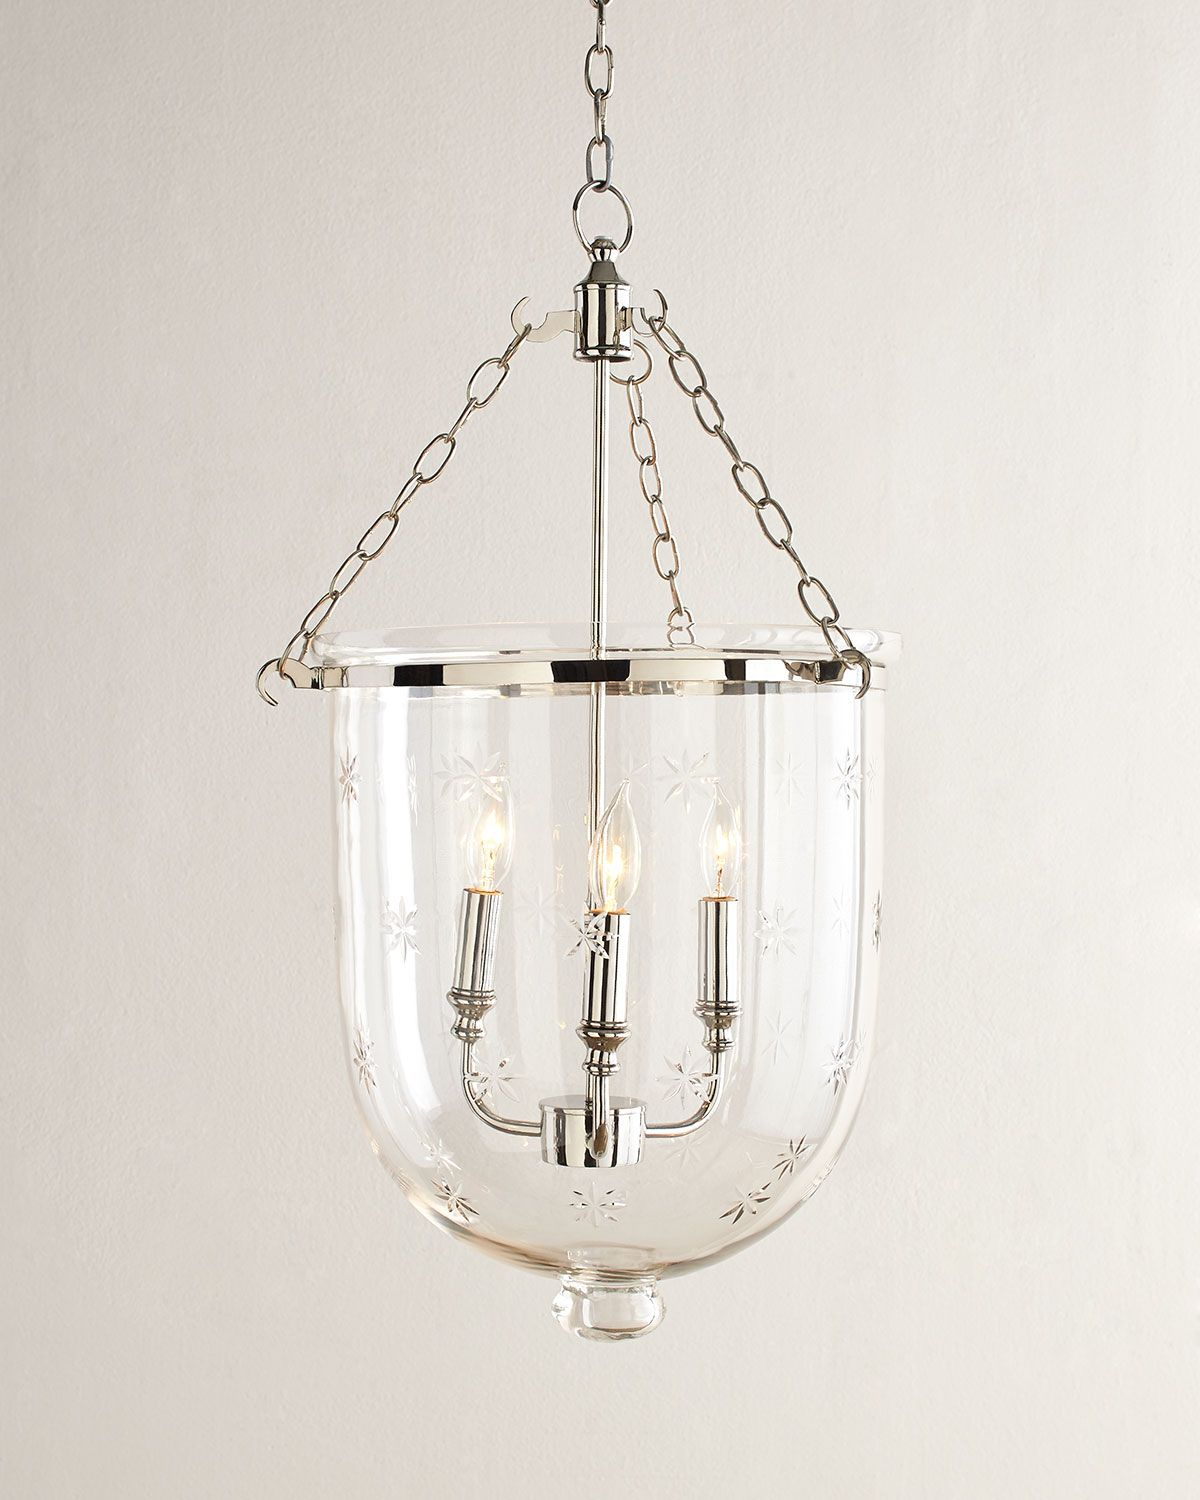 neiman marcus lighting. Dannica Etched Three-Light Pendant, Clear - Neiman Marcus Lighting M